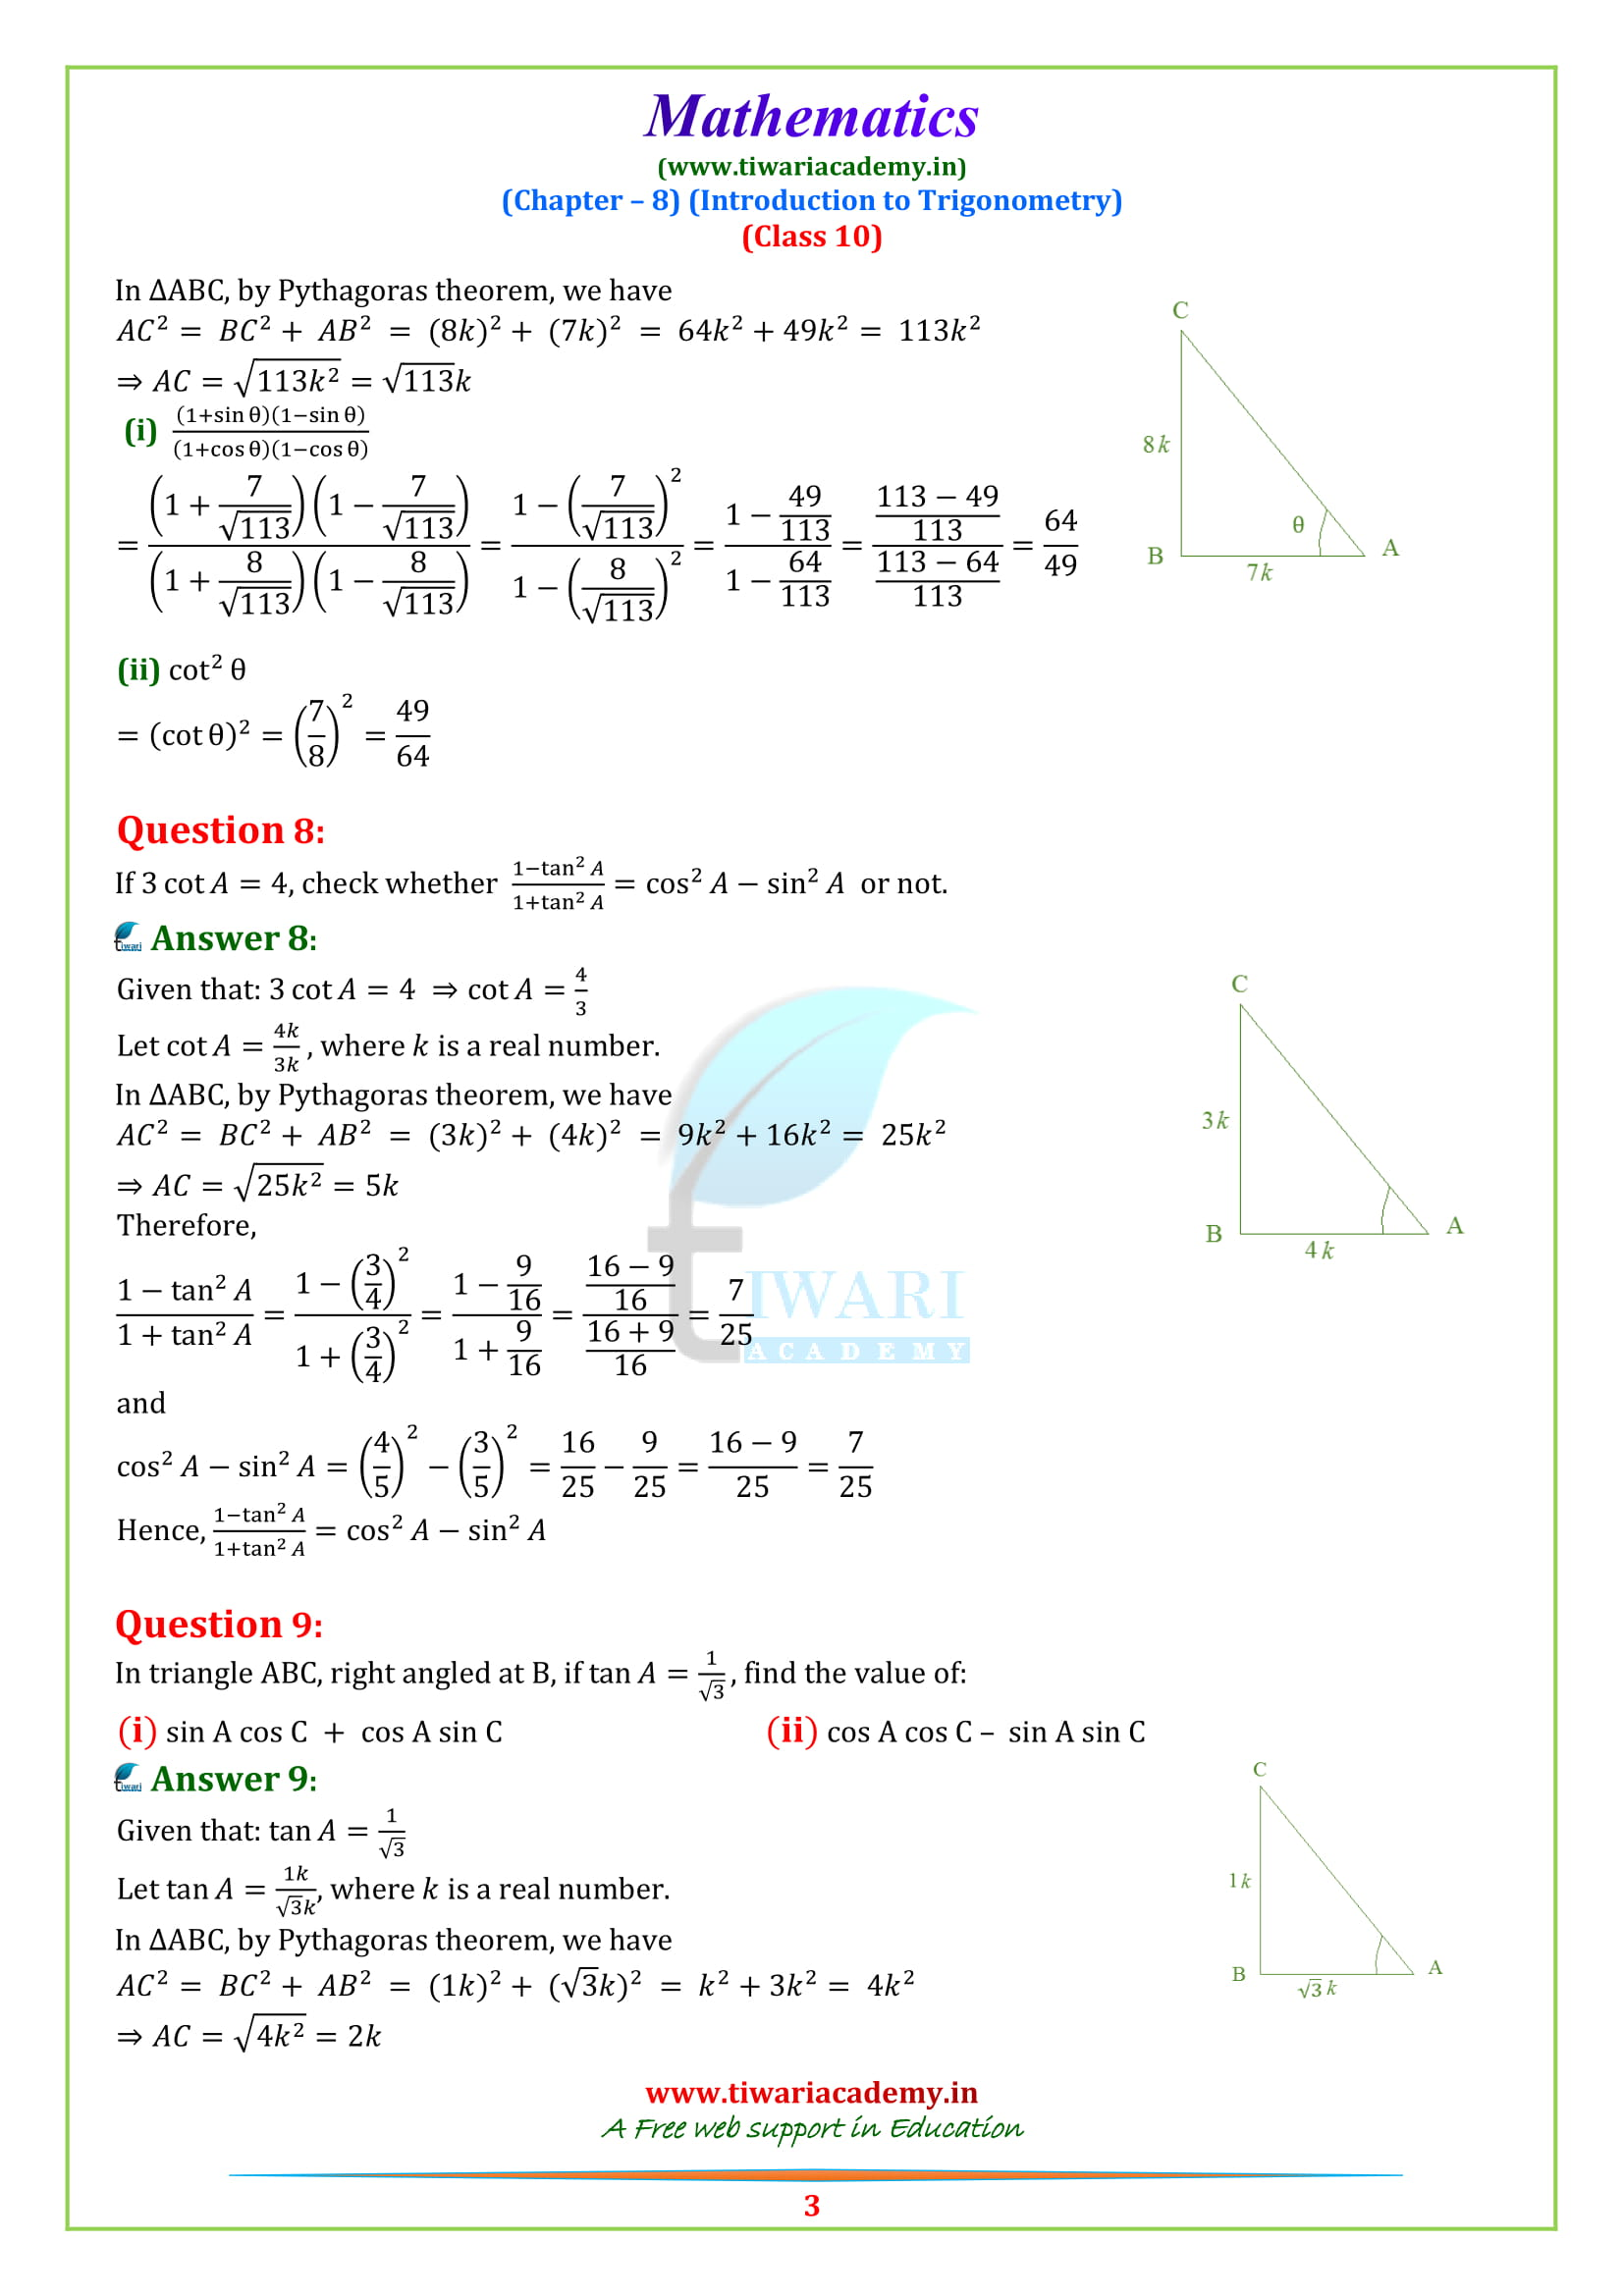 NCERT Solutions for class 10 Maths Chapter 8 Exercise 8.1 all question answers